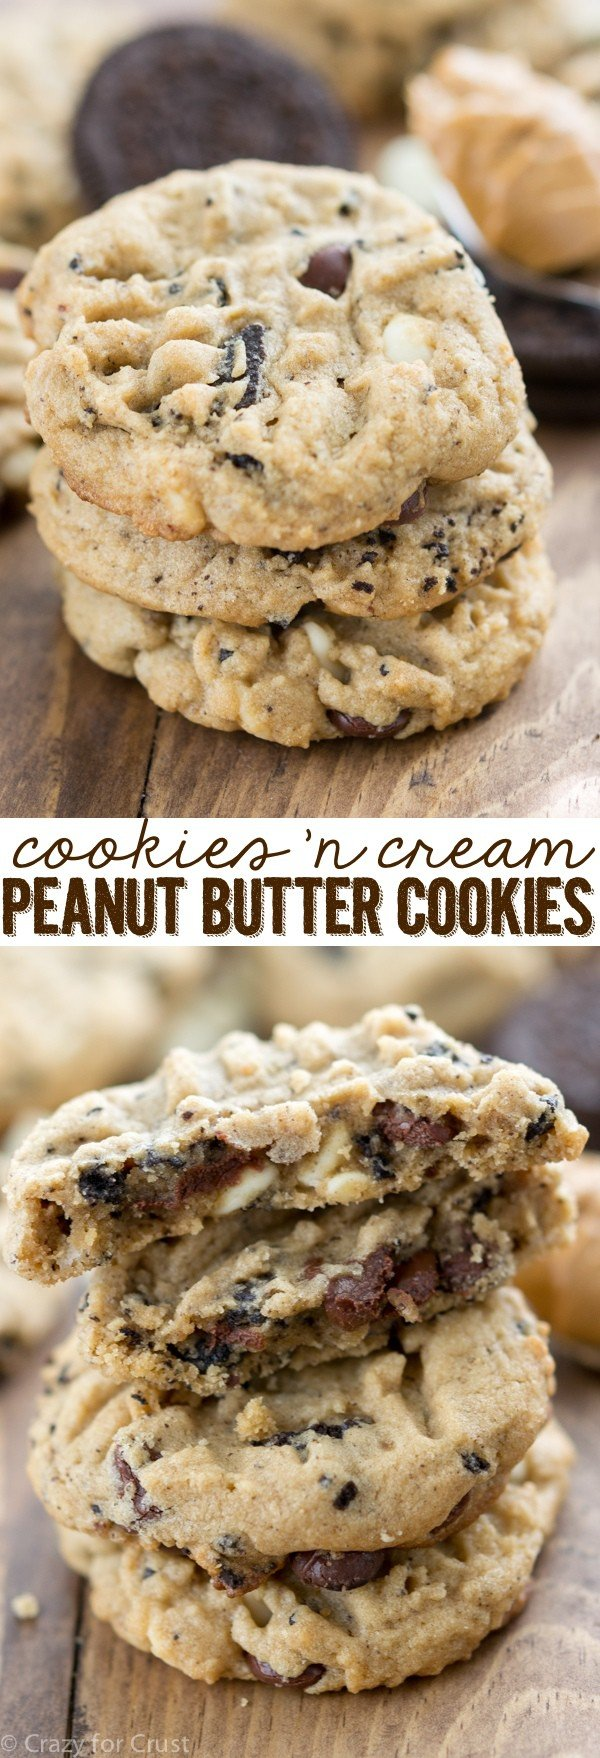 Cookies 'n Cream Peanut Butter Cookies are my favorite peanut butter cookie recipe filled with chocolate chips, white chocolate, and crushed Oreo pieces!